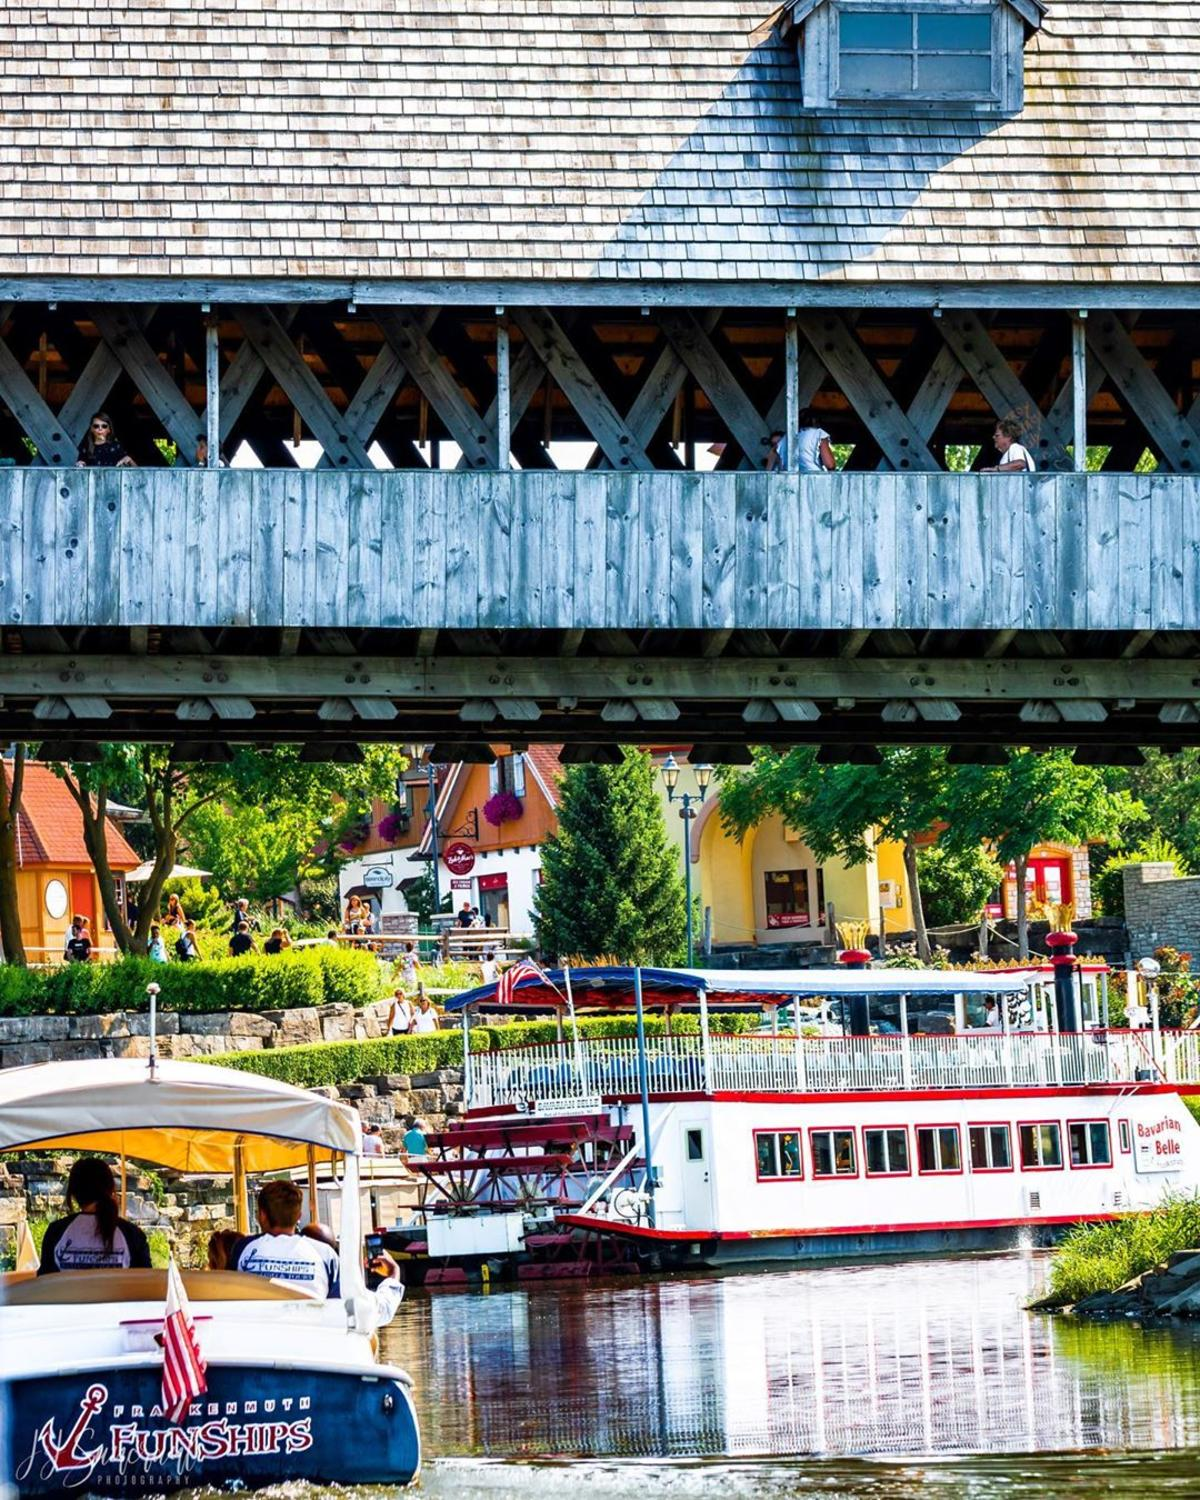 Bavarian Belle Riverboat and Frankenmuth FunShips passing under the Holz-Brucke Covered Bridge in Frankenmuth